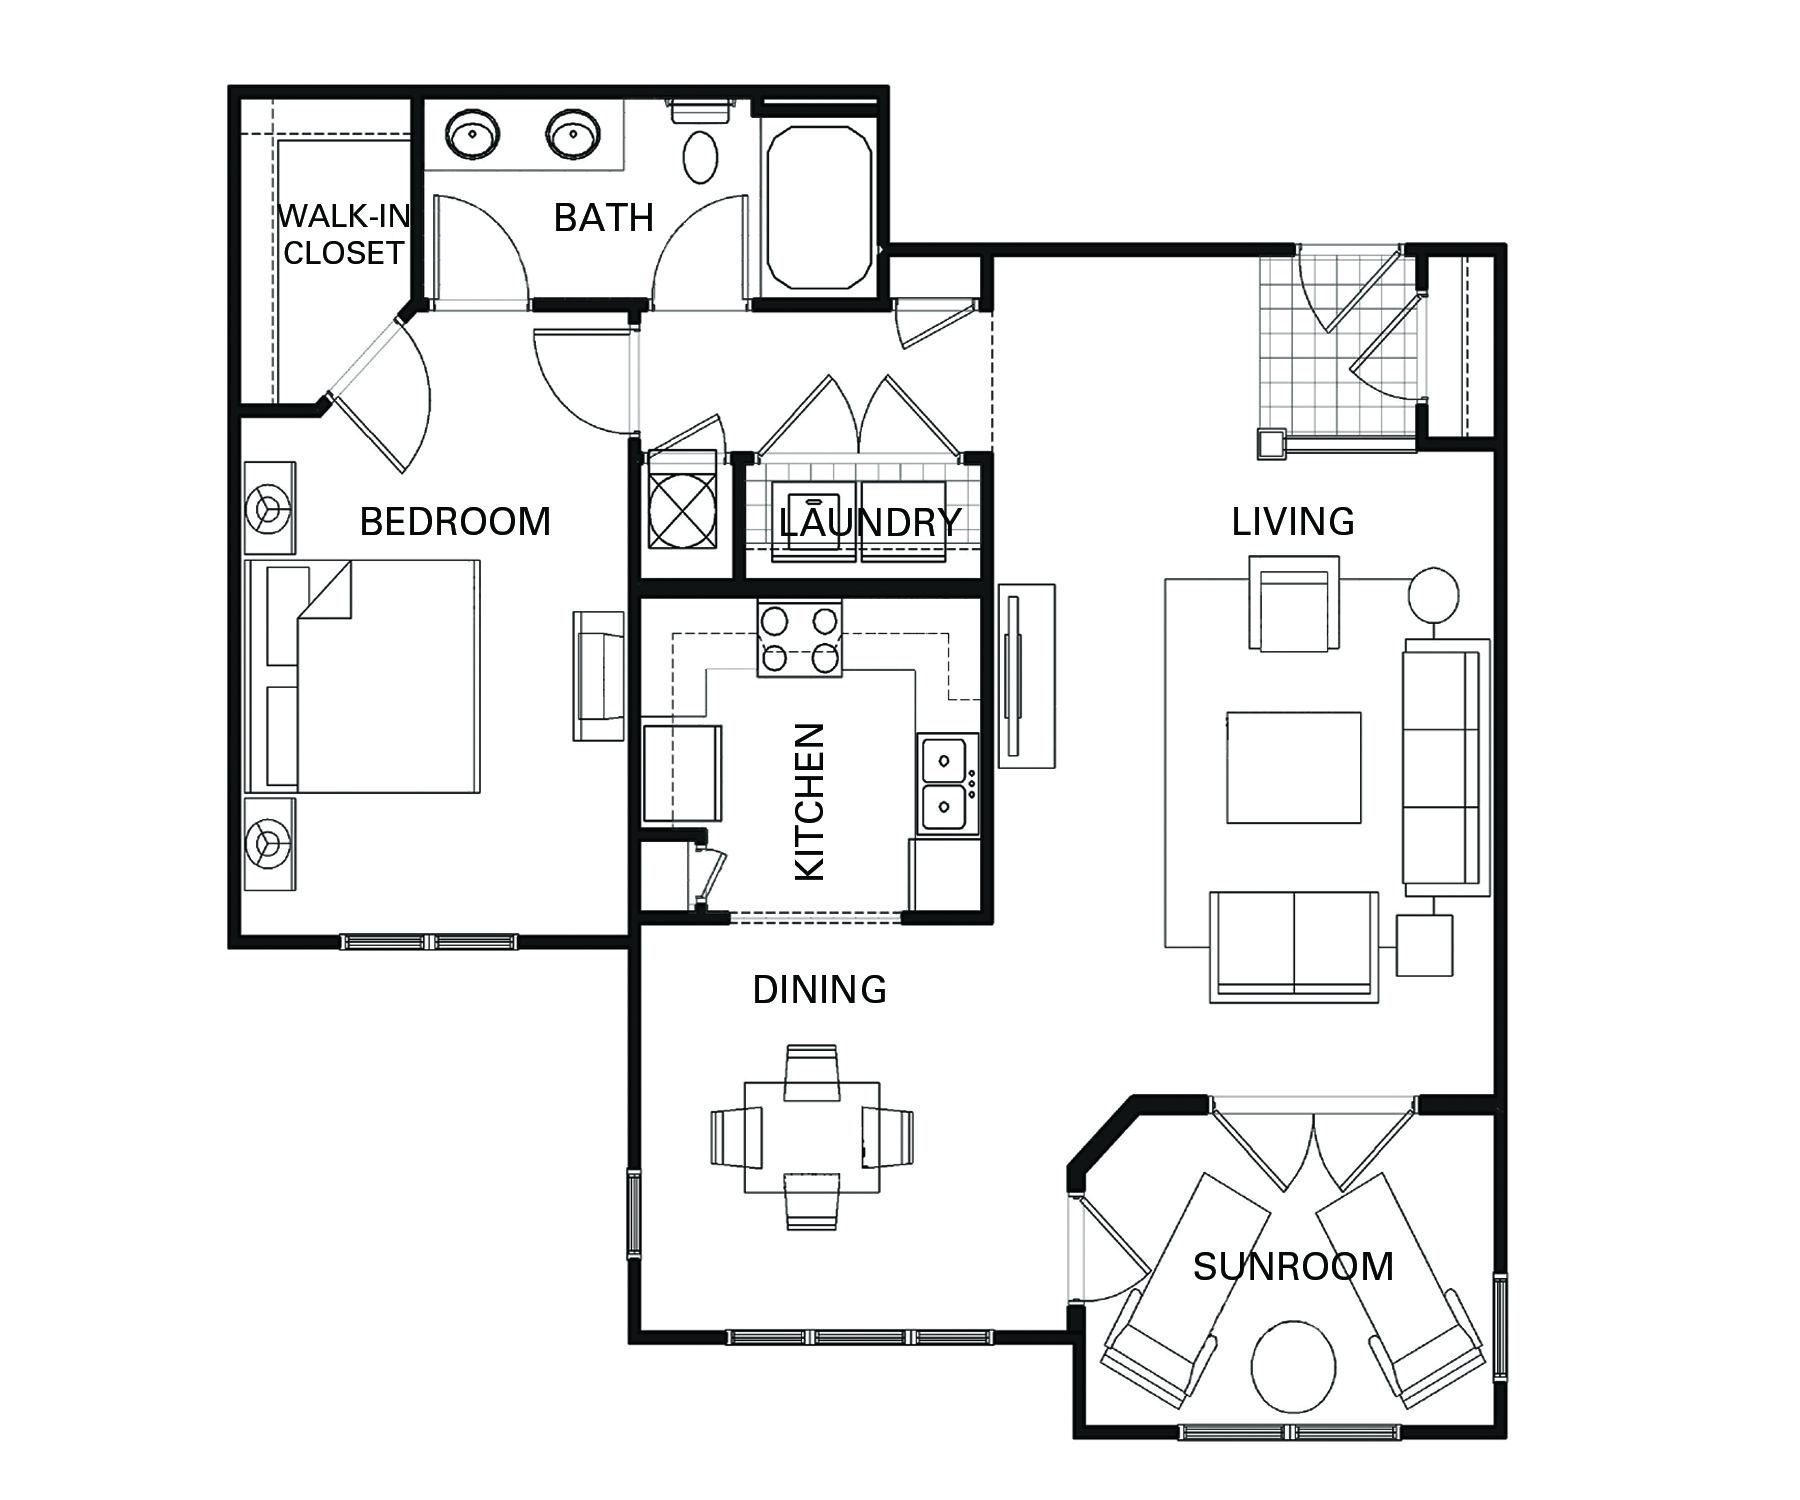 One bedroom one bathroom A5 floorplan at The Apartments at Blakeney in Charlotte, NC